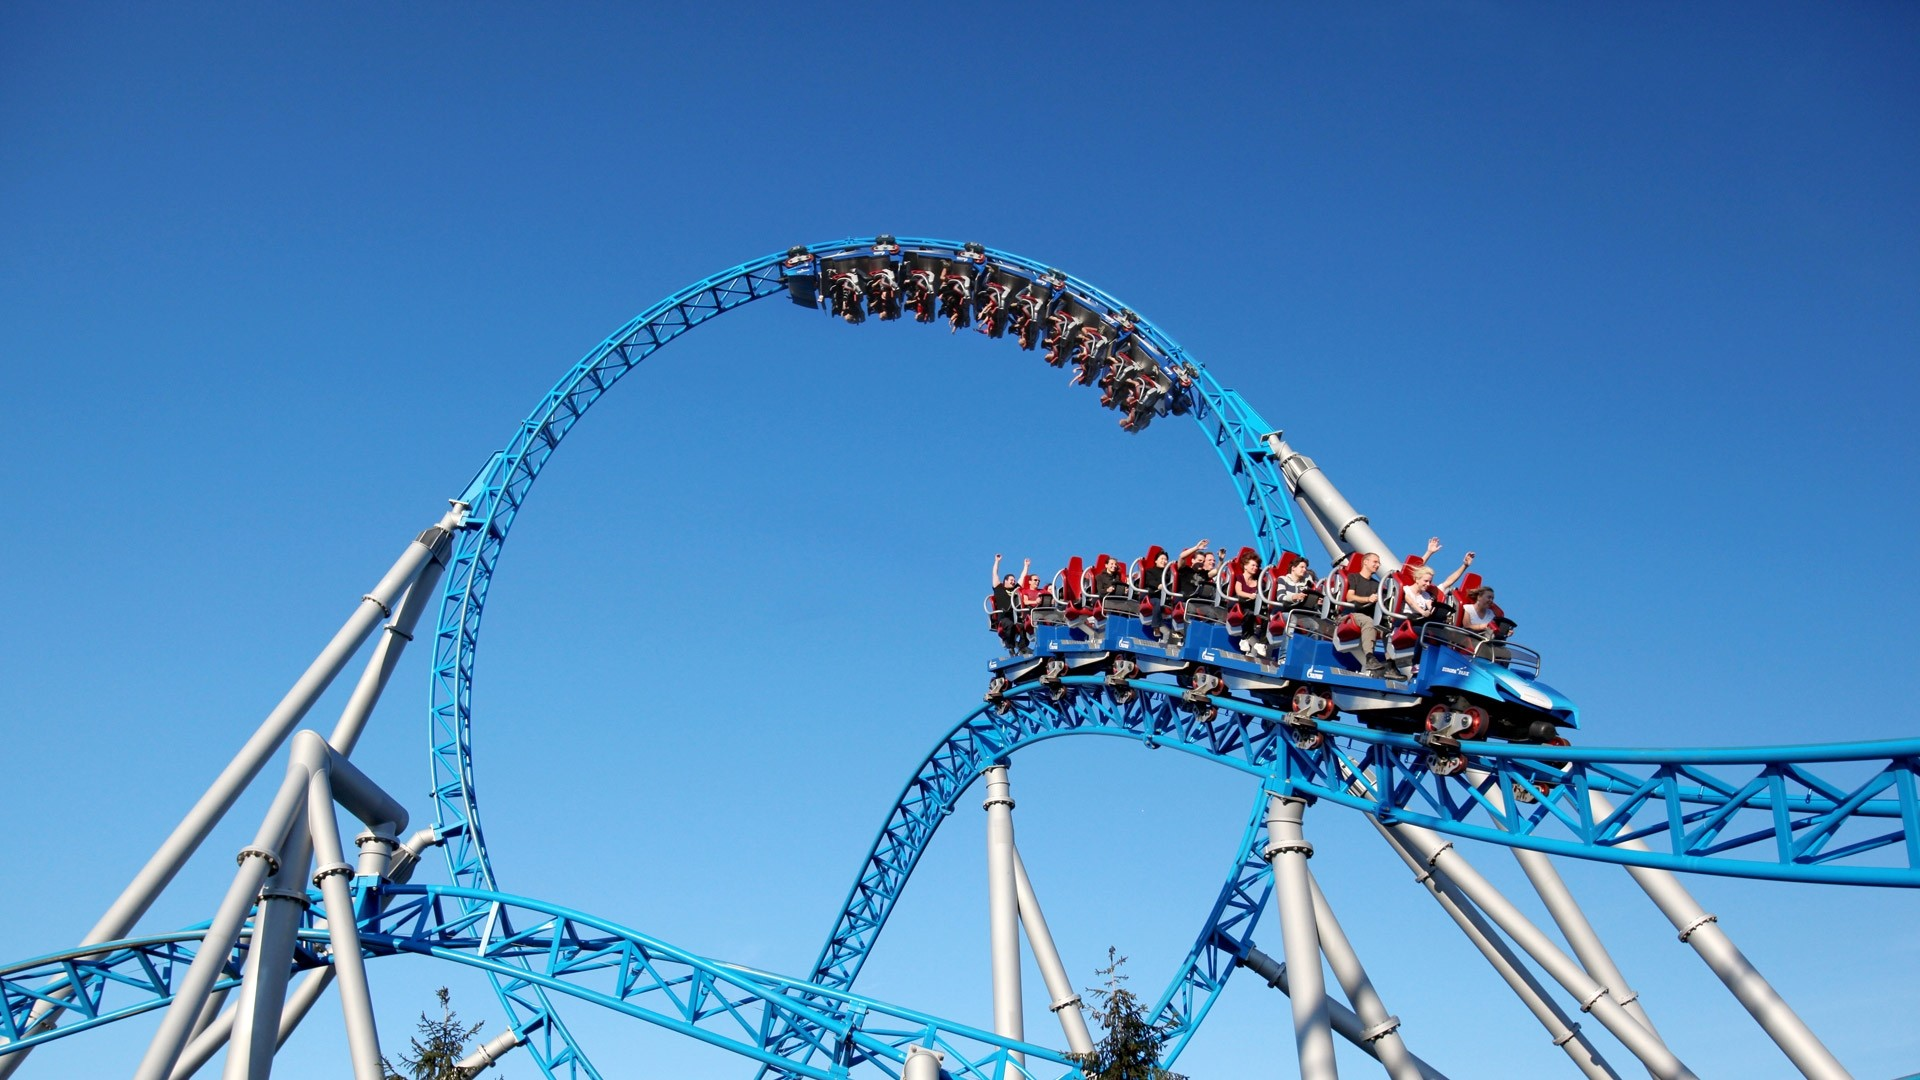 Roller Coaster Cool HD Wallpaper